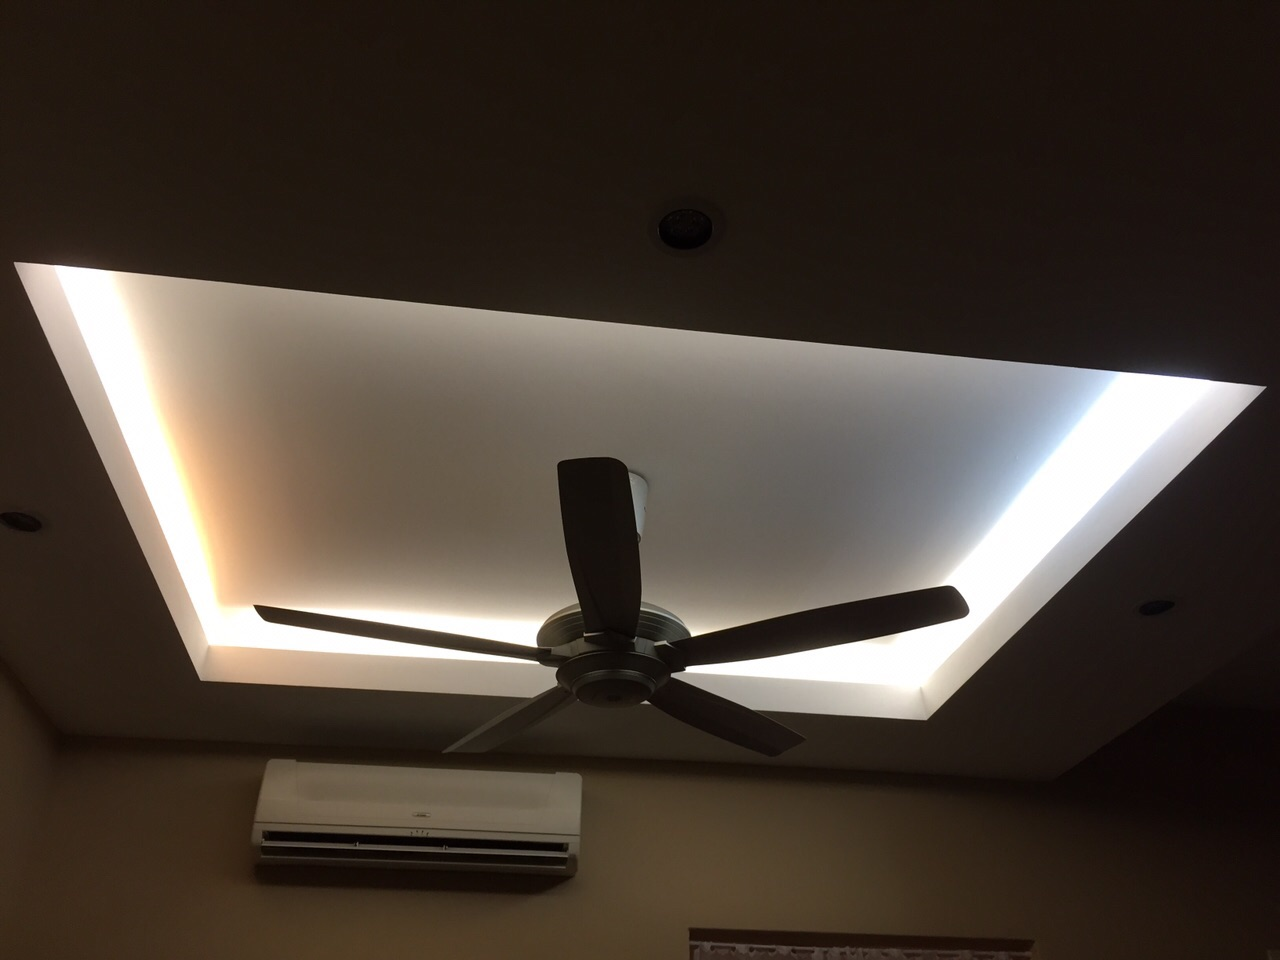 Plaster ceiling design renovation malaysia - Plaster Ceiling Building Materials Malaysia